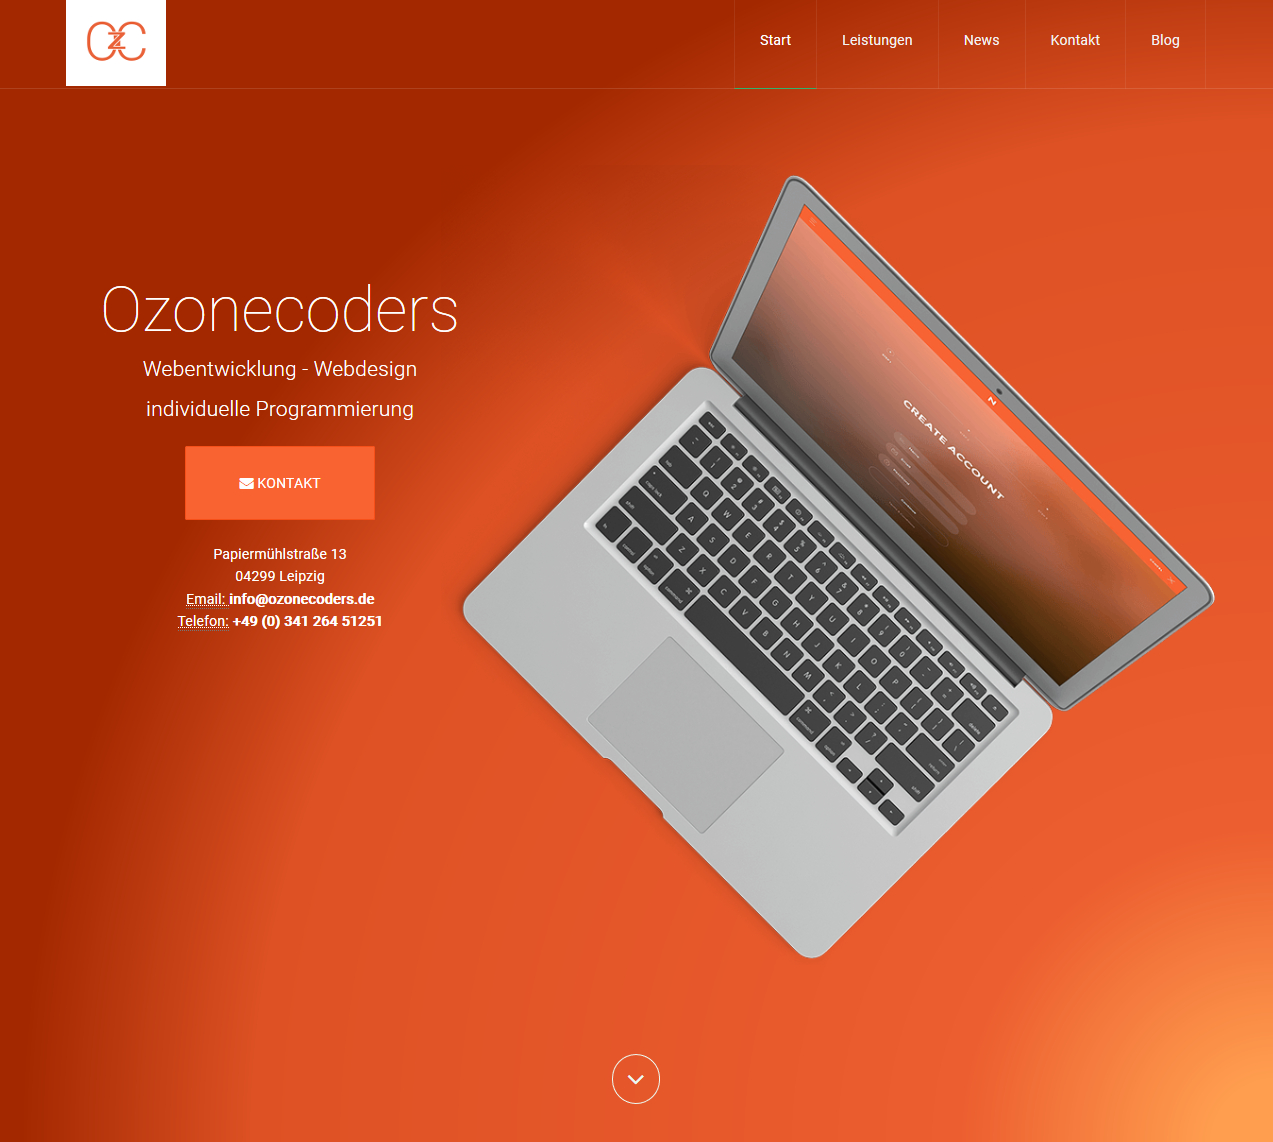 Ozonecoders Relaunch